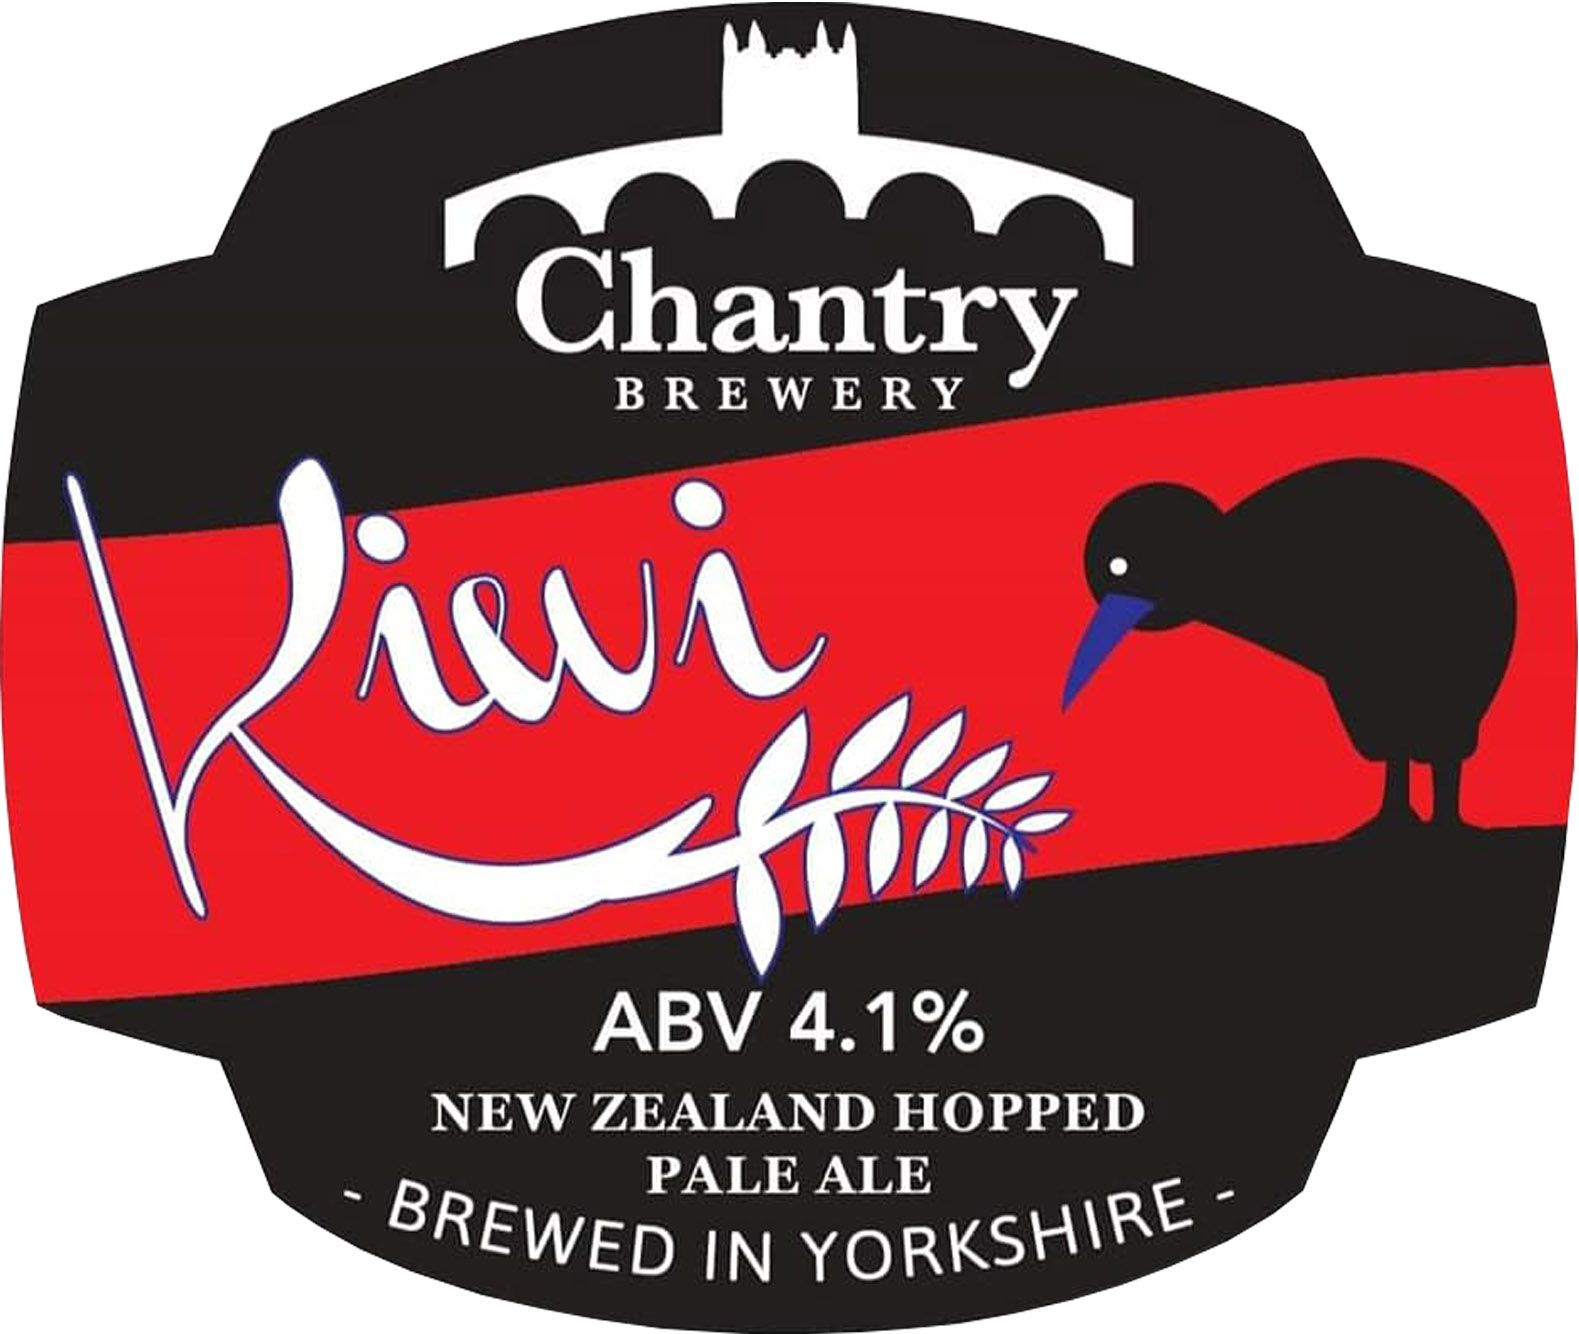 Chantry Brewery Kiwi